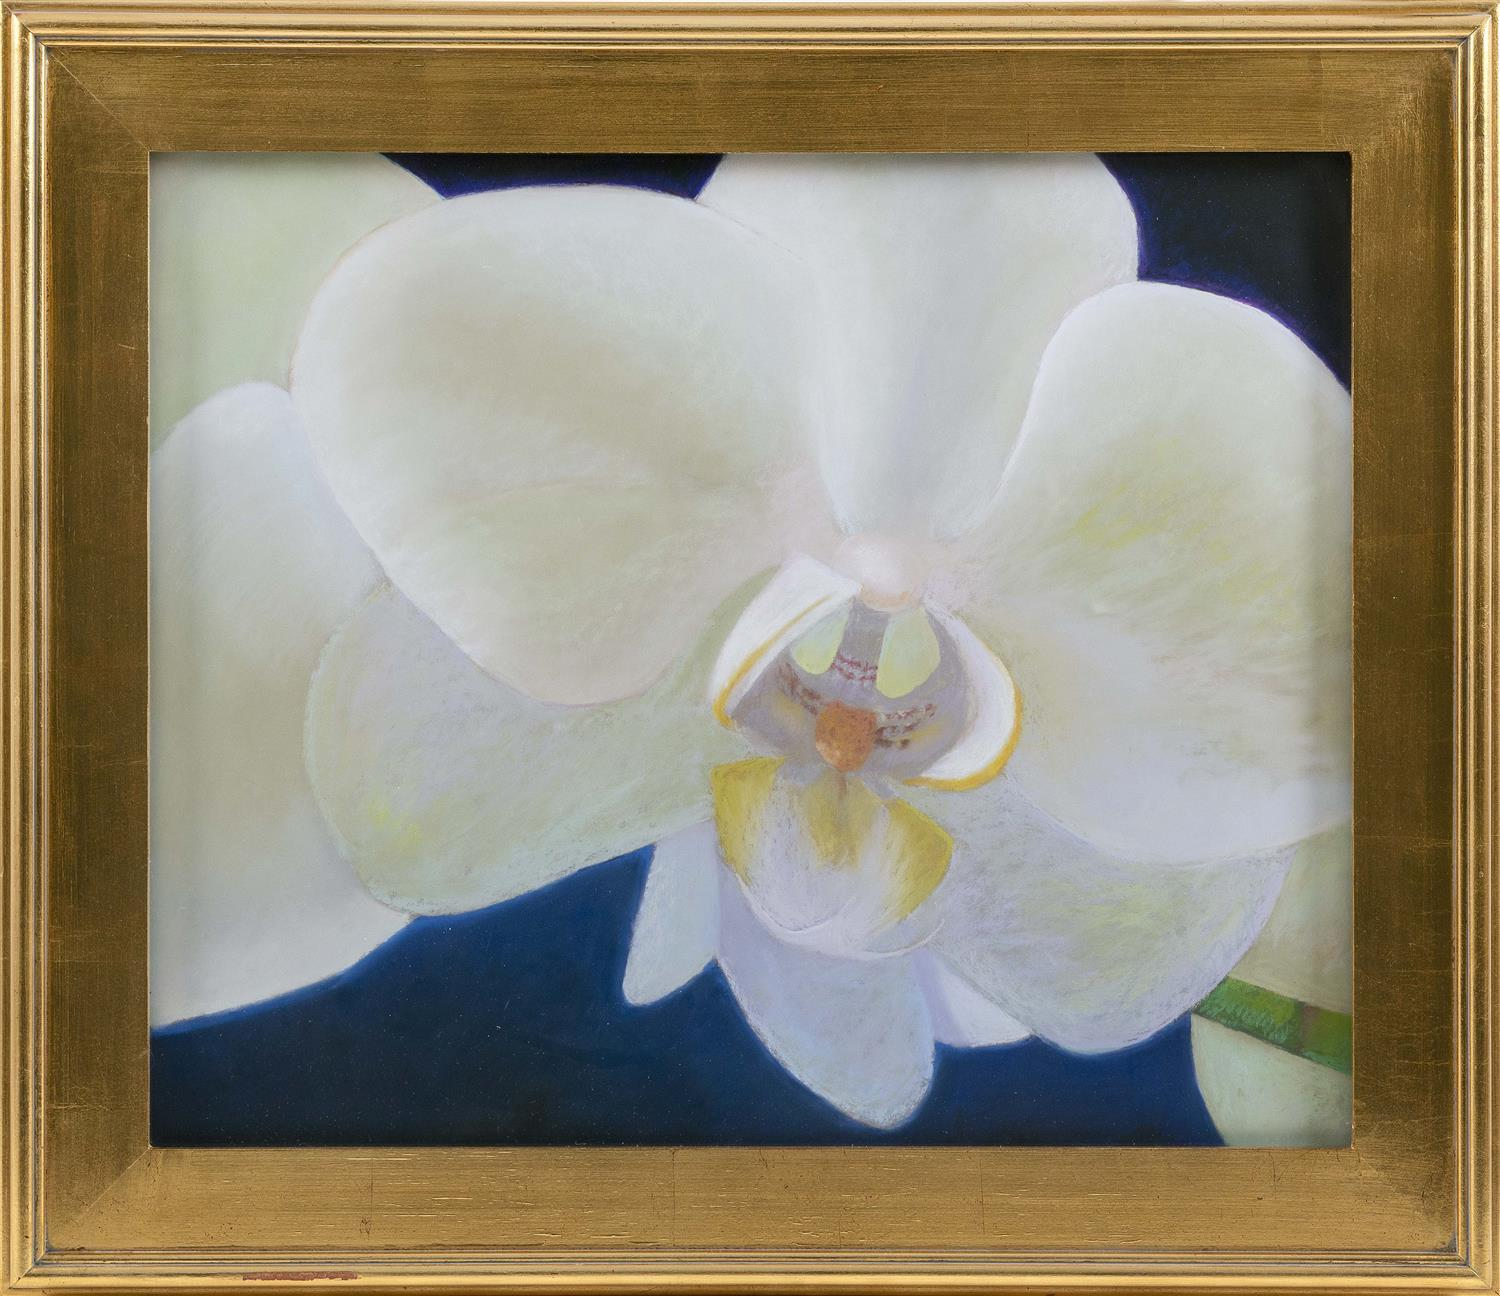 """STEPHANIE O'NEILL, Cape Cod, Contemporary, """"Nelle's Orchid""""., Pastel on Wallis paper, 20"""" x 24"""". Framed 25.5"""" x 30""""."""